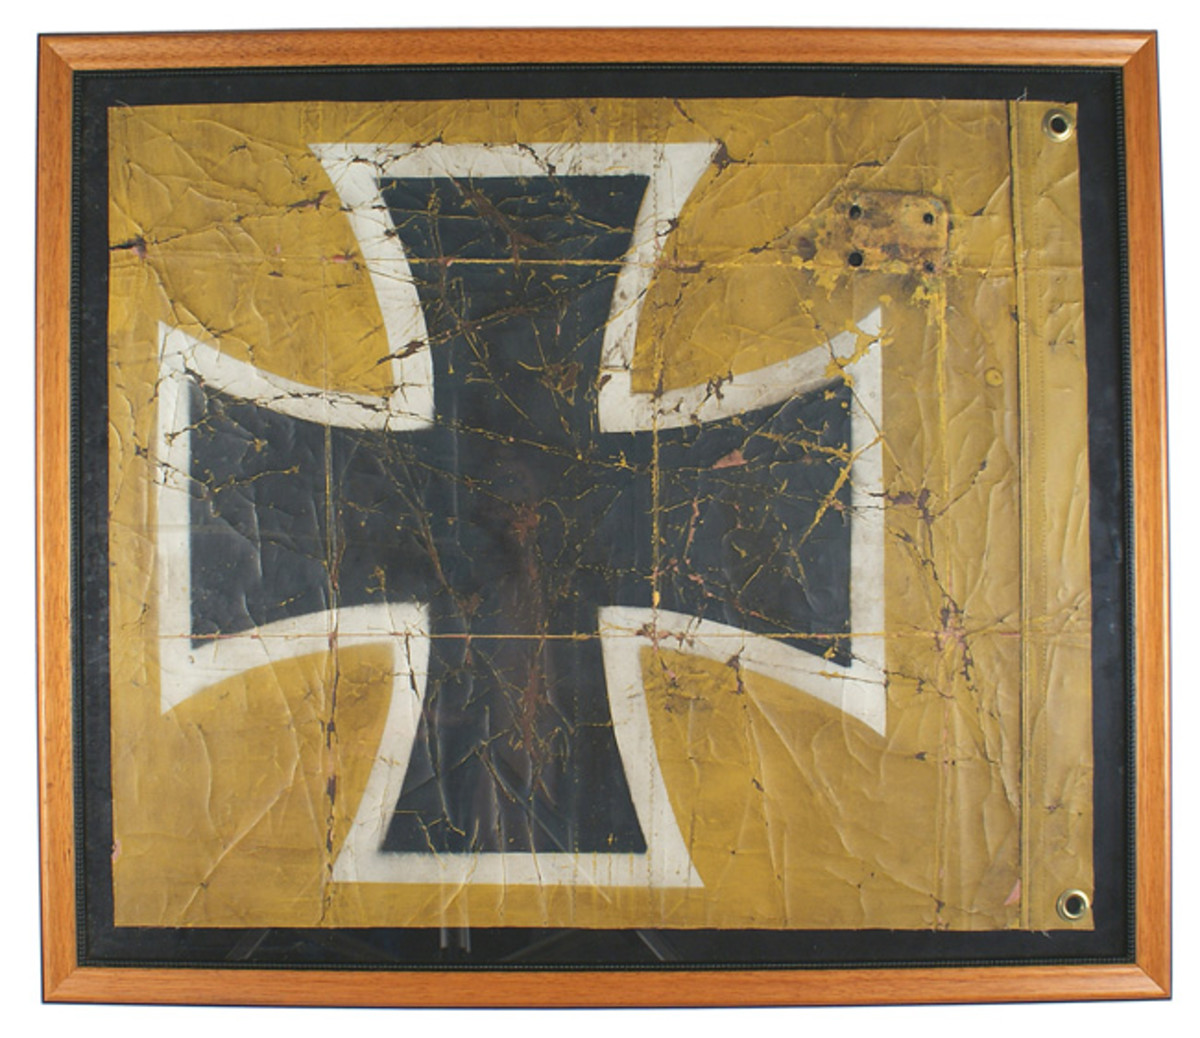 Original section of fabric from a German World War I-era Albatross plane, yellow painted canvas-type material, featuring a black Iron Cross image.